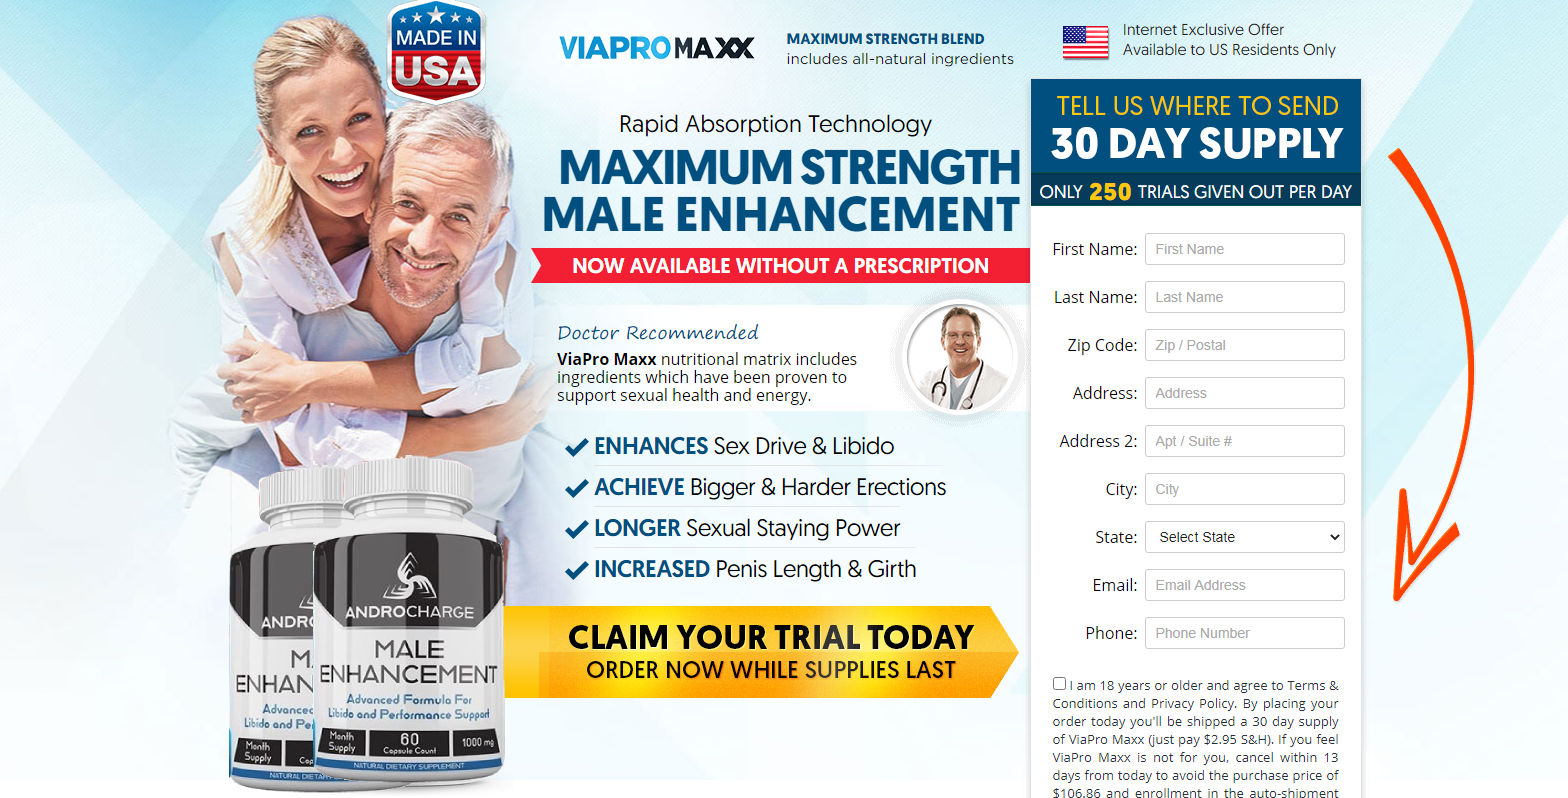 AndroCharge Male Enhancement [100% Legit Male Pills] Scam or Hoax?